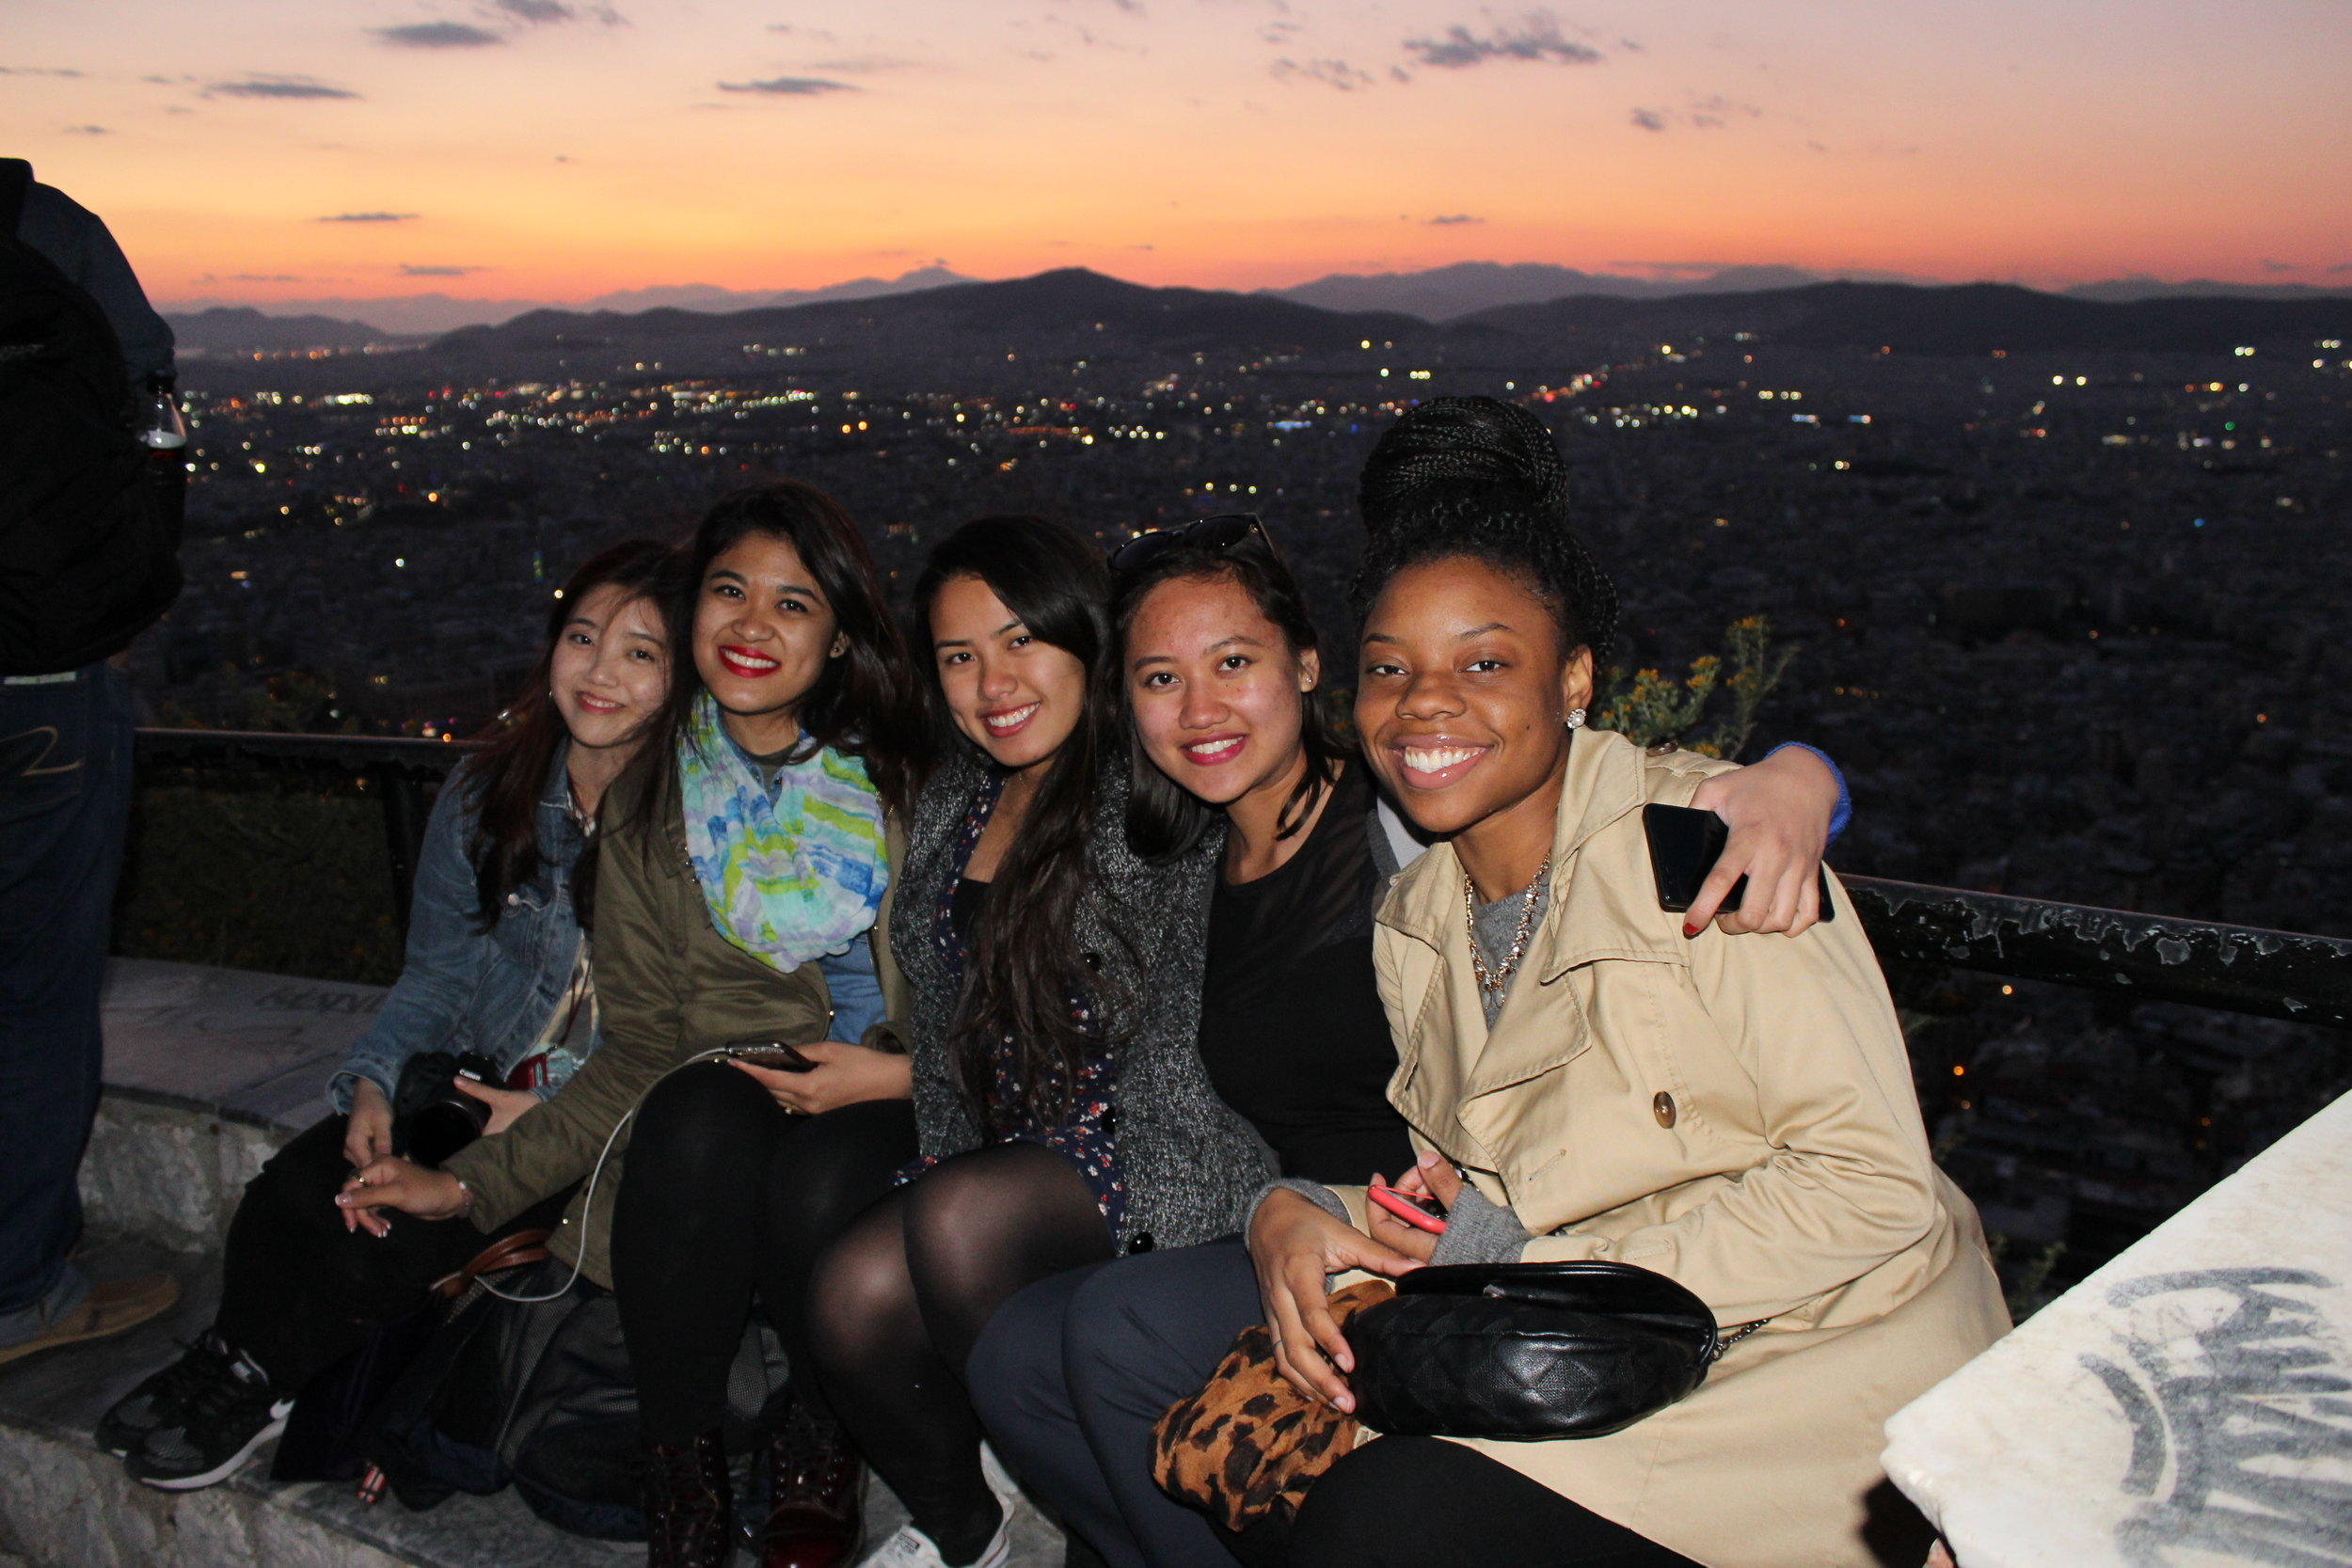 Some of my bestest friends and I became friends because I had researched and planned an entire itinerary to Greece 3 months ahead and randomly asked them if they wanted to come when I first met them.  Guess planning ahead lands you some amazing friends hehe  . [Athens, Greece]